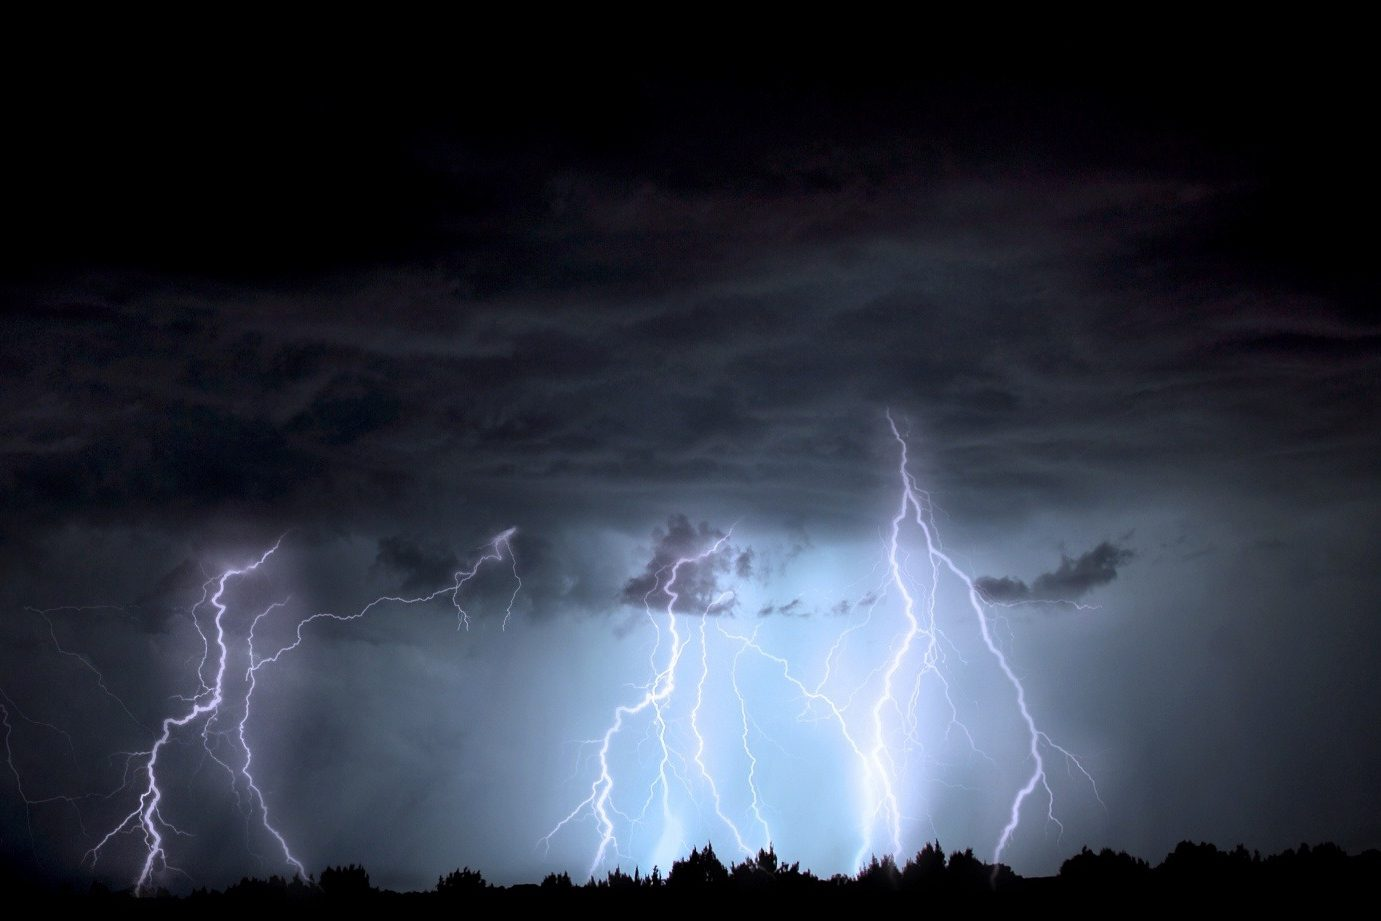 Lightning Safety in the Backcountry